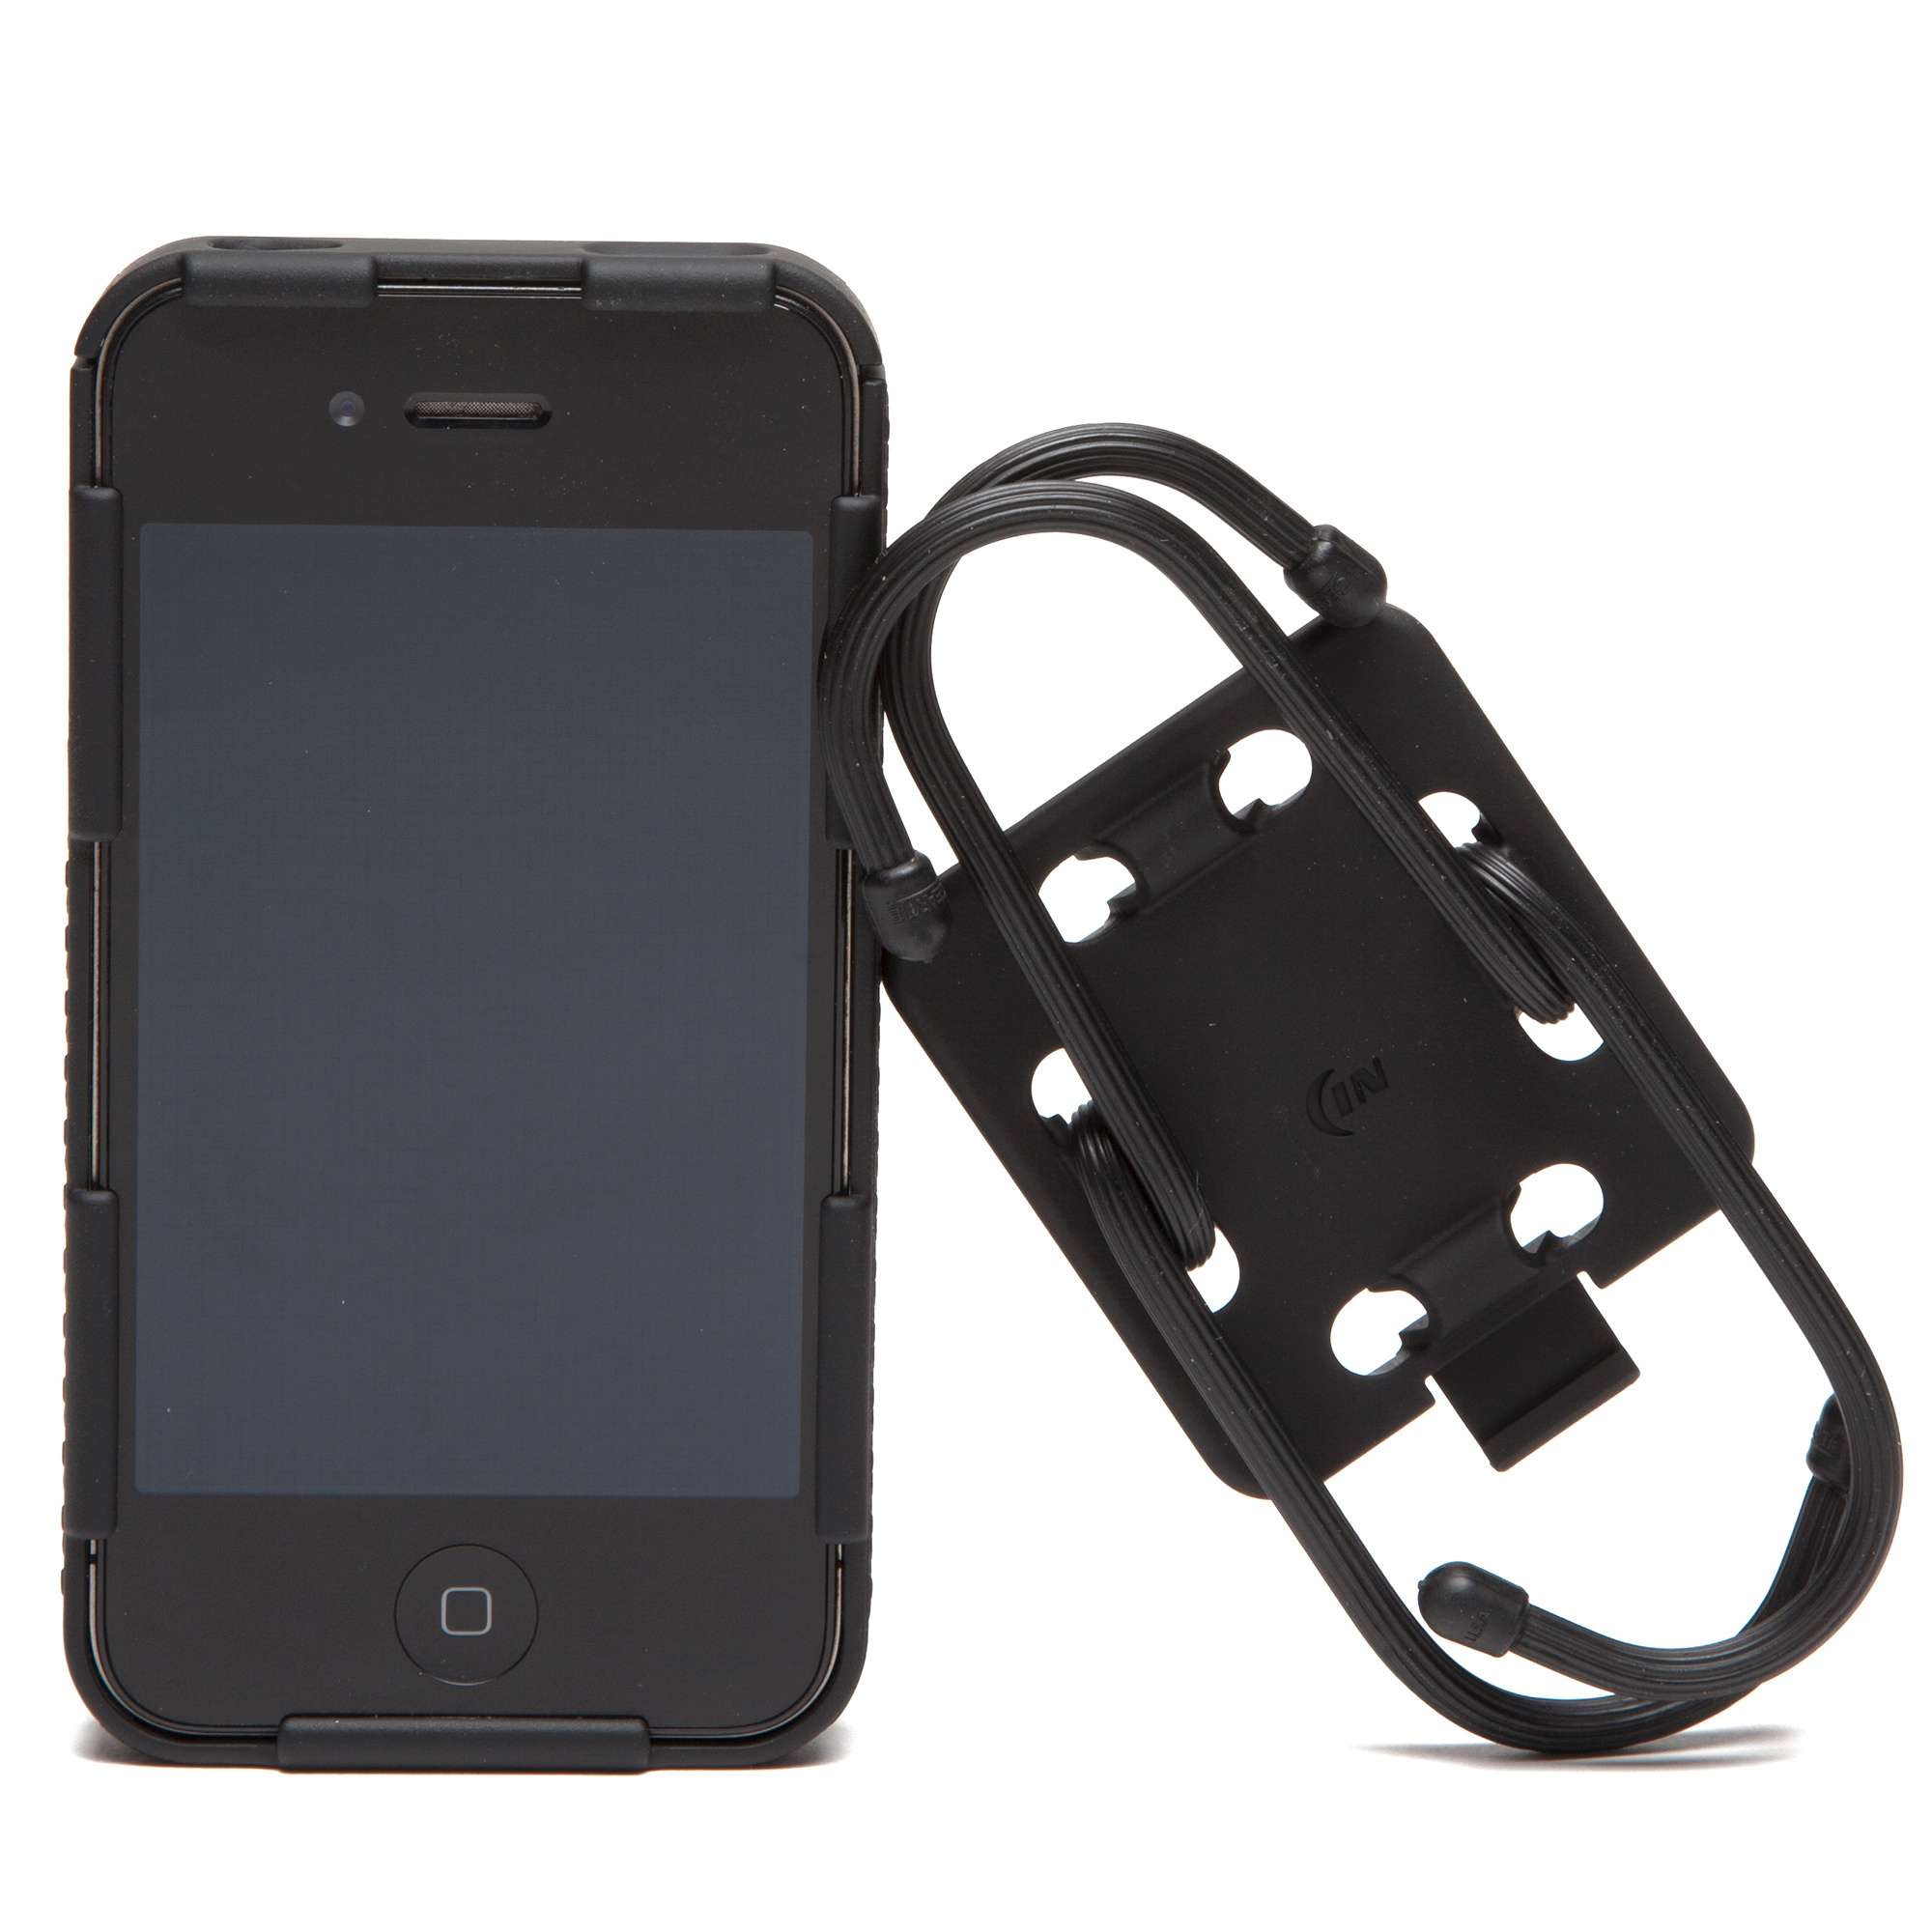 NITEIZE Connect Case and Mobile Mount